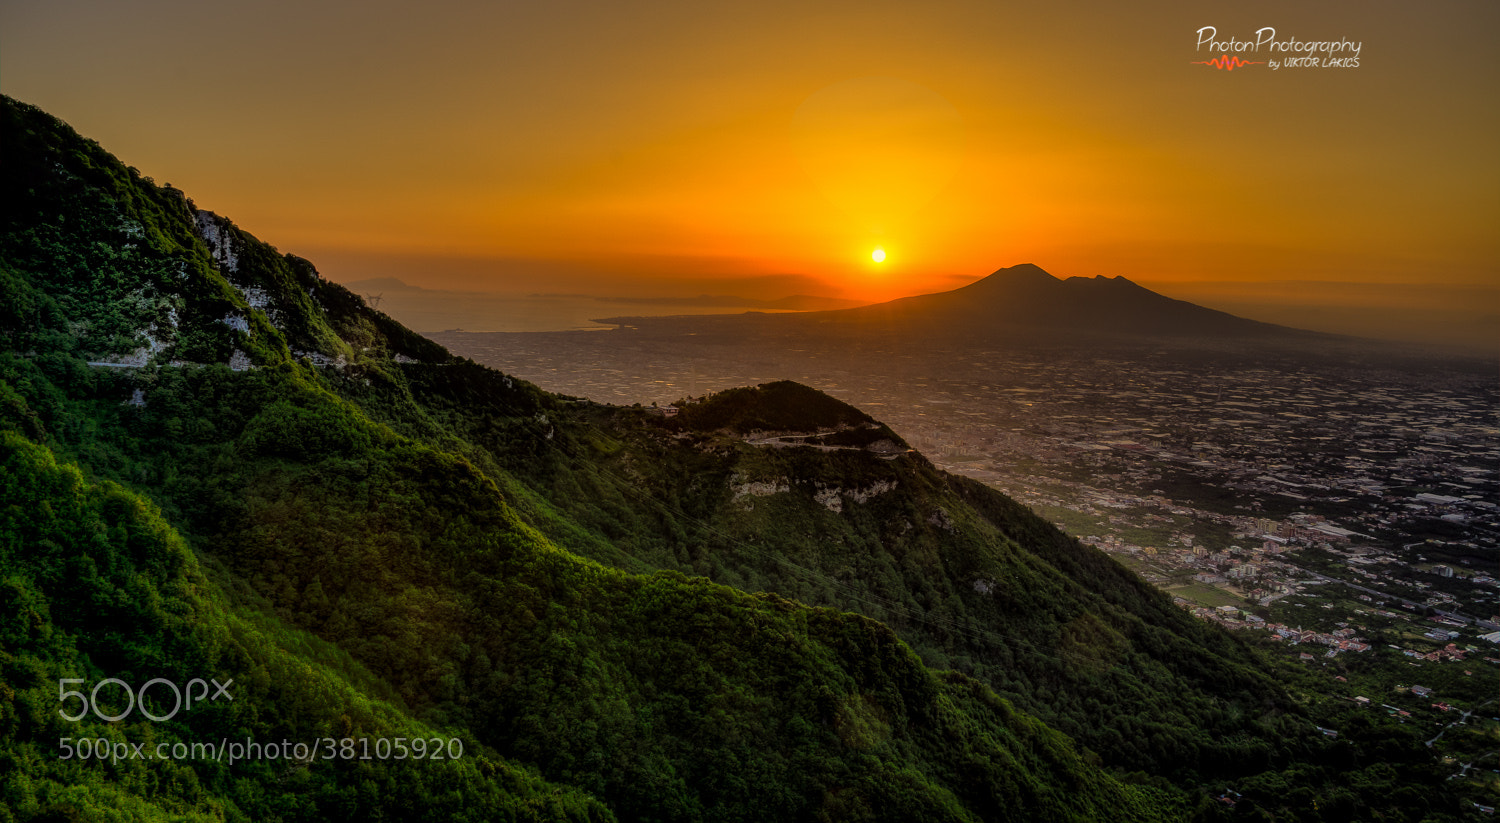 Photograph Sunset above Mount Vesuvius by PhotonPhotography -Viktor Lakics on 500px